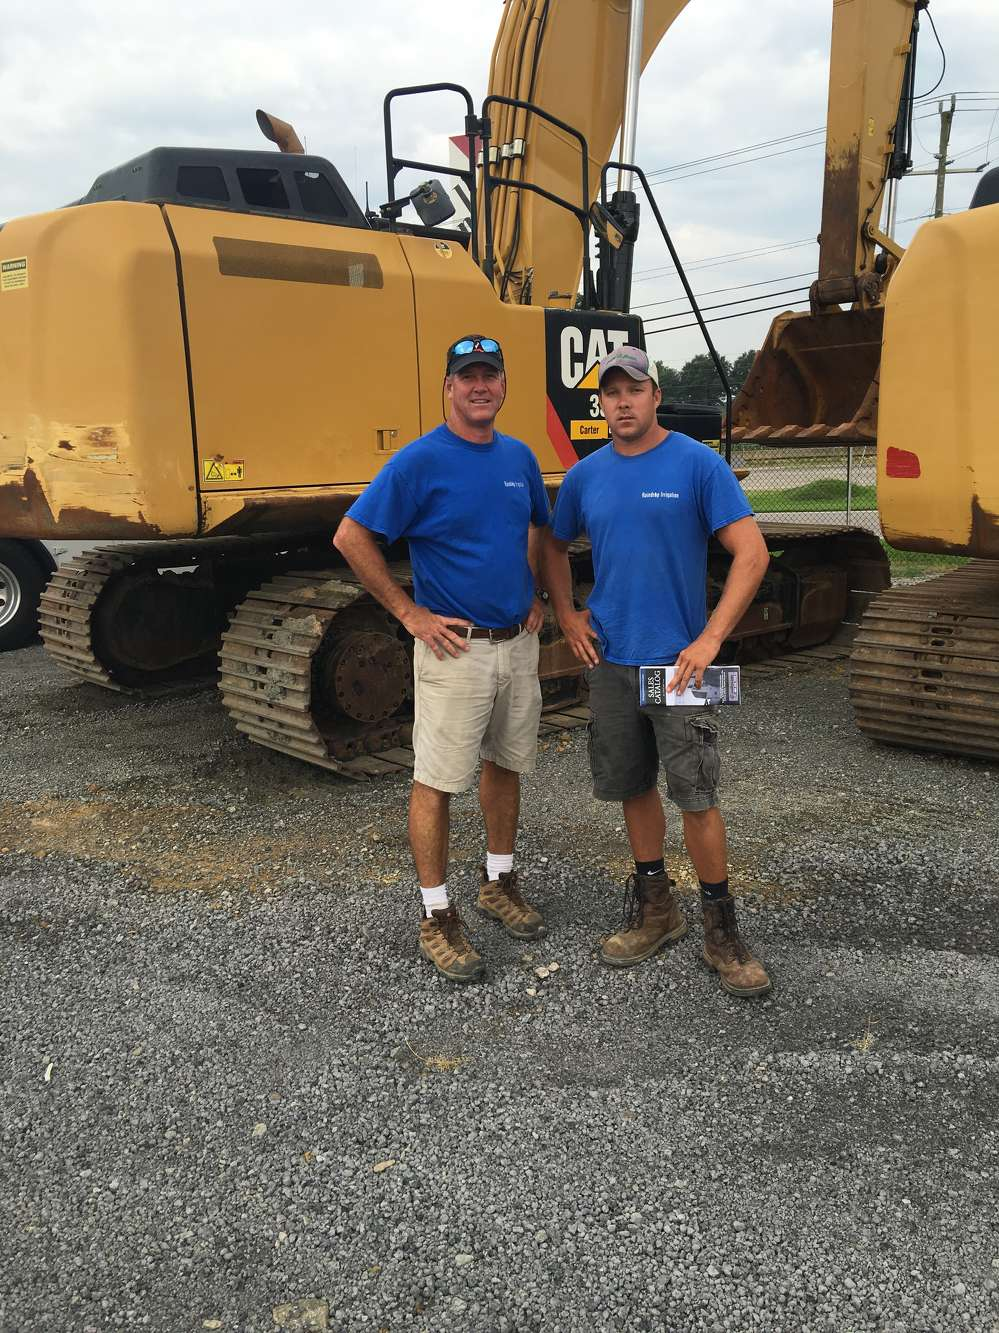 Woody (L) and Conner Hall, both of Raindrop Excavating in Richmond, Va., look for a dozer and an excavator.